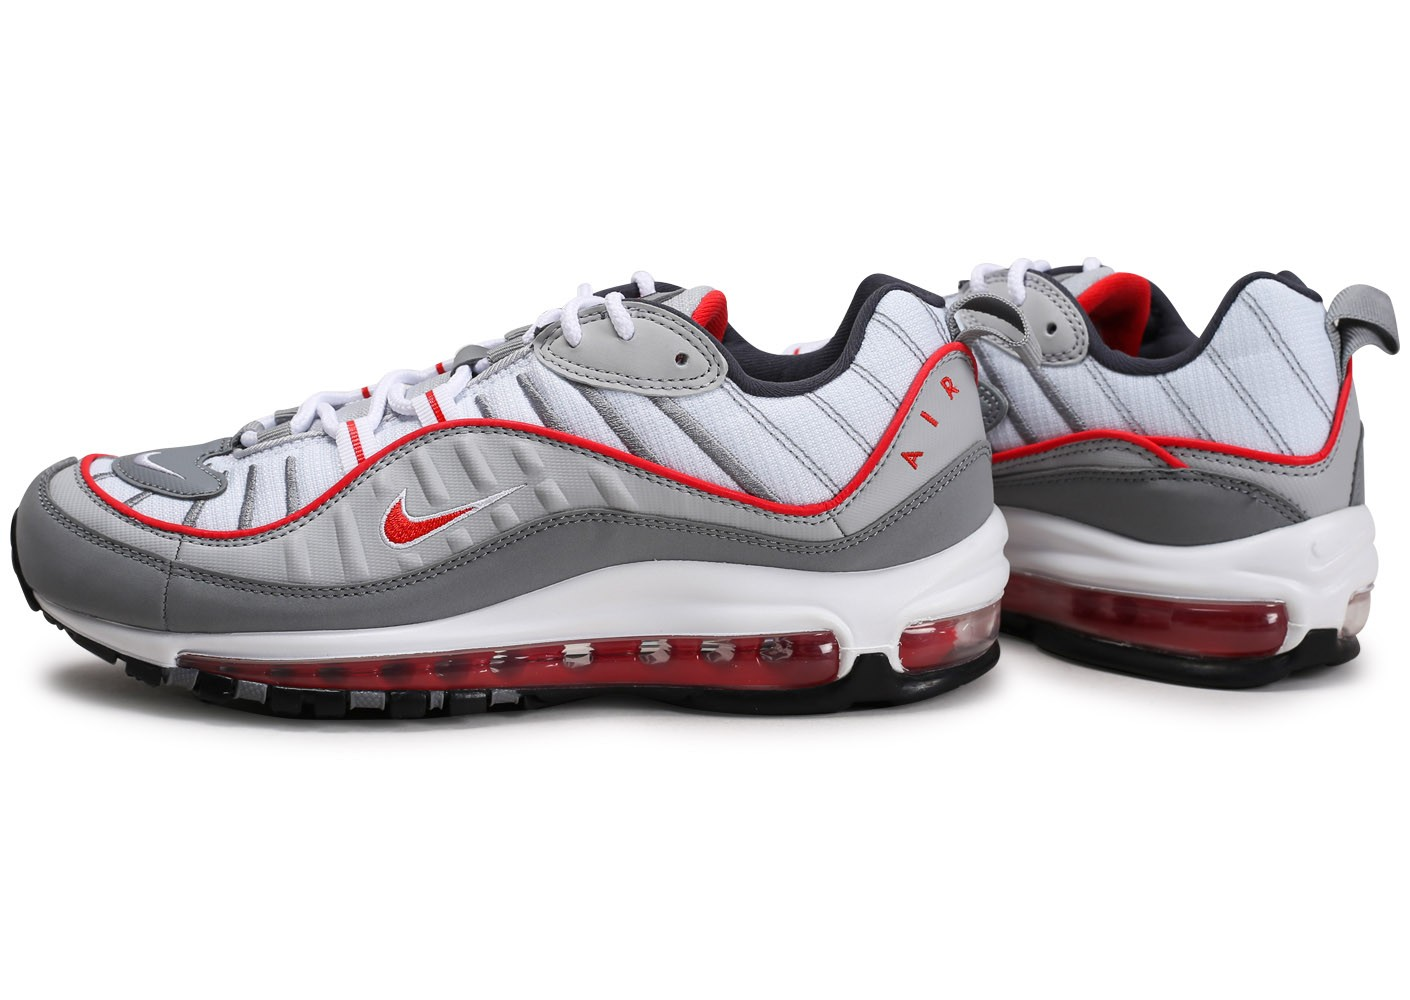 Nike Air Max 98 gris rouge - Chaussures Baskets homme - Chausport